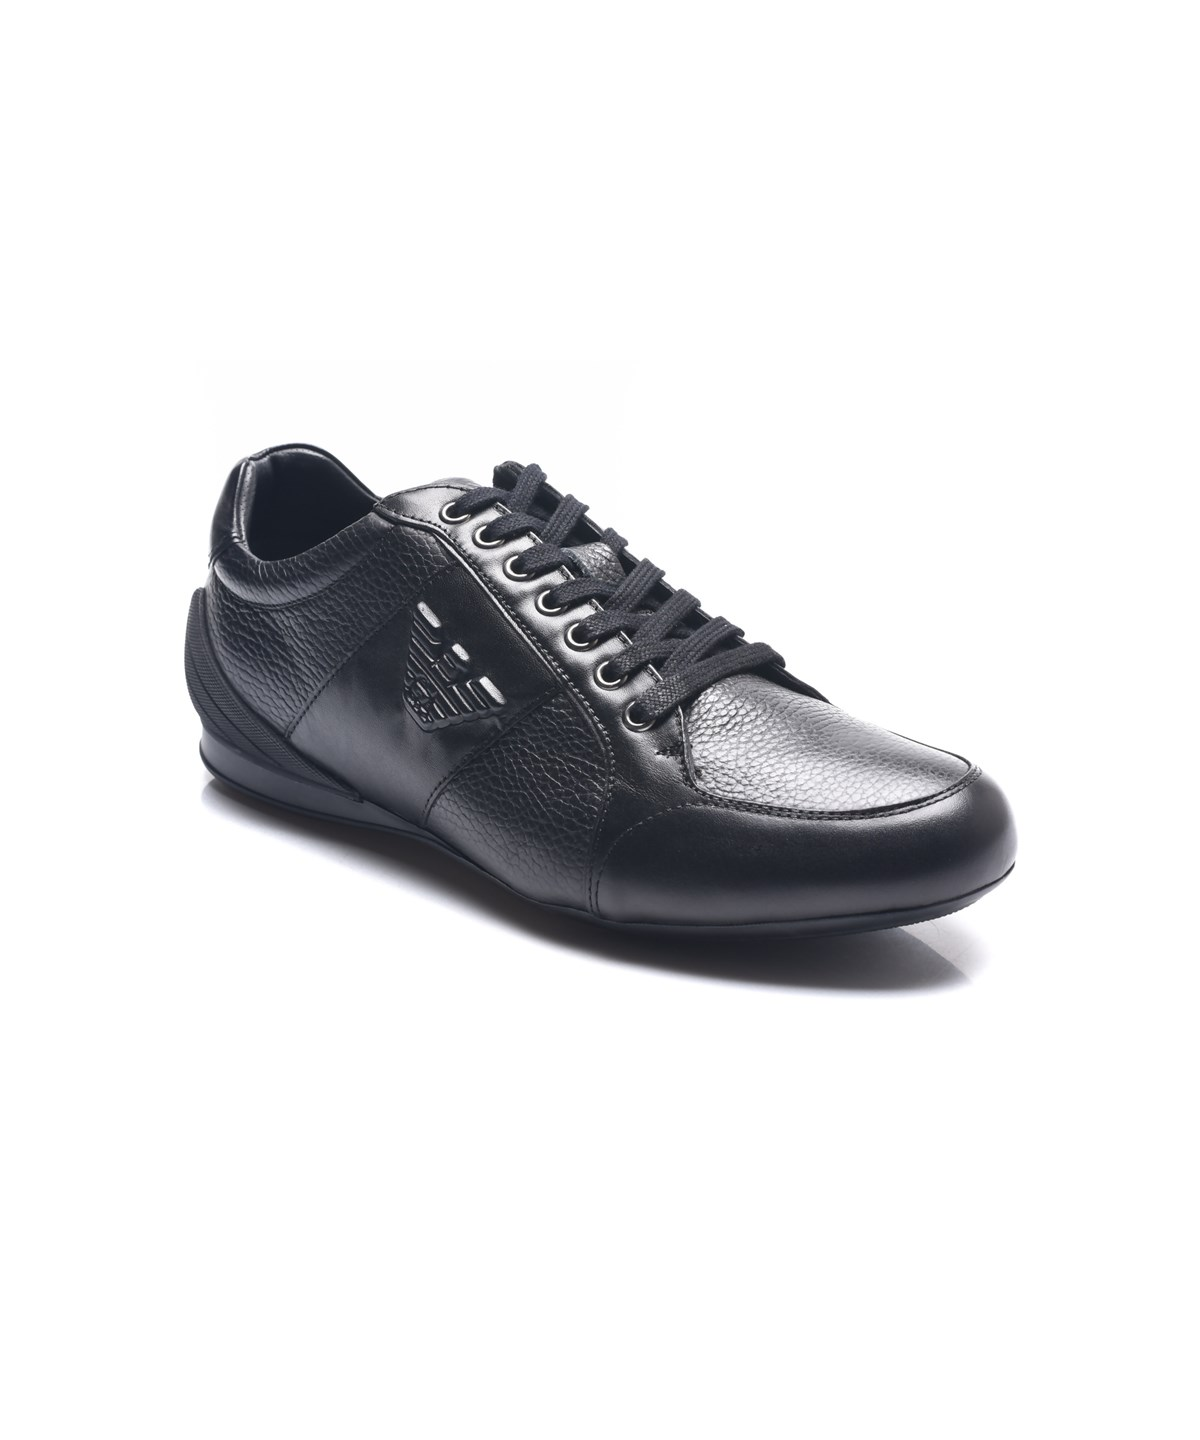 Giorgio Armani Logo Sneaker Cheap Sale Fast Delivery Cheap Sale For Cheap KiUGA